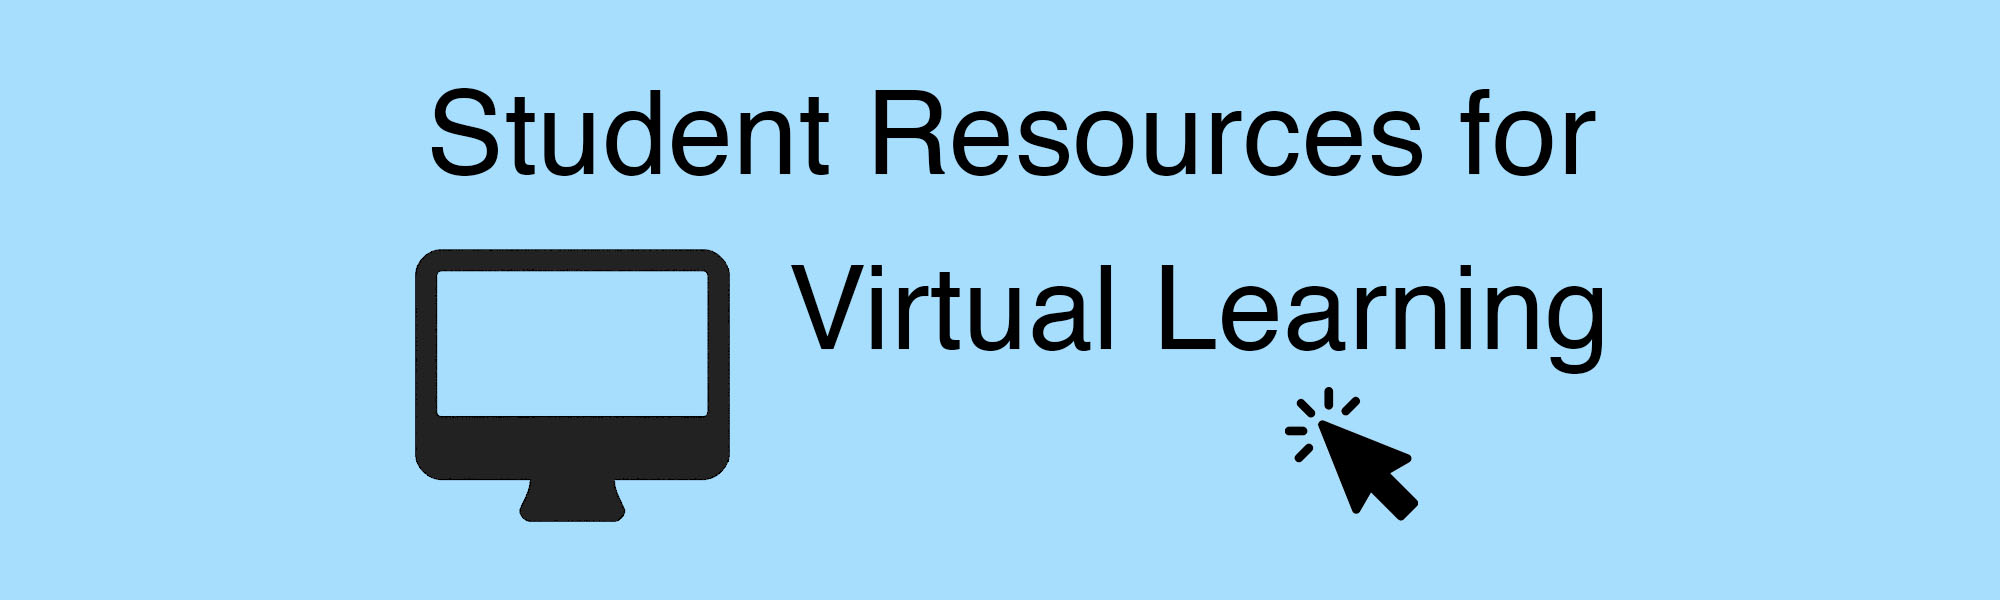 Student Resources for Virtual Learning